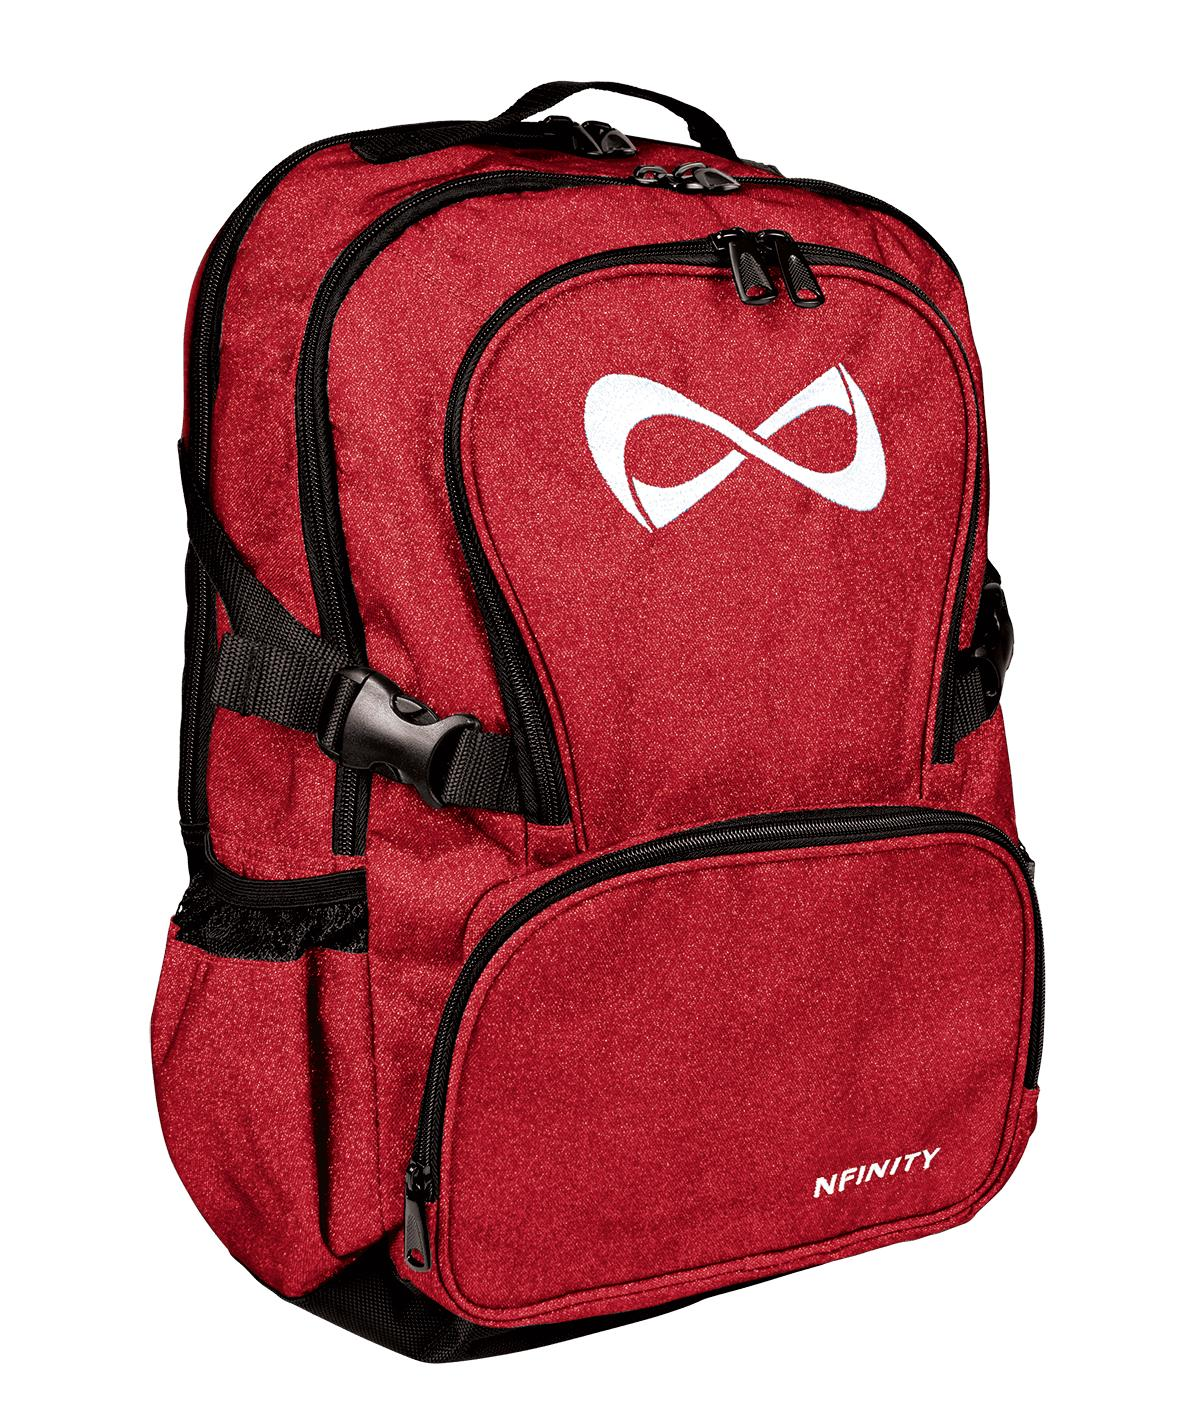 Nfinity Sparkle Backpack